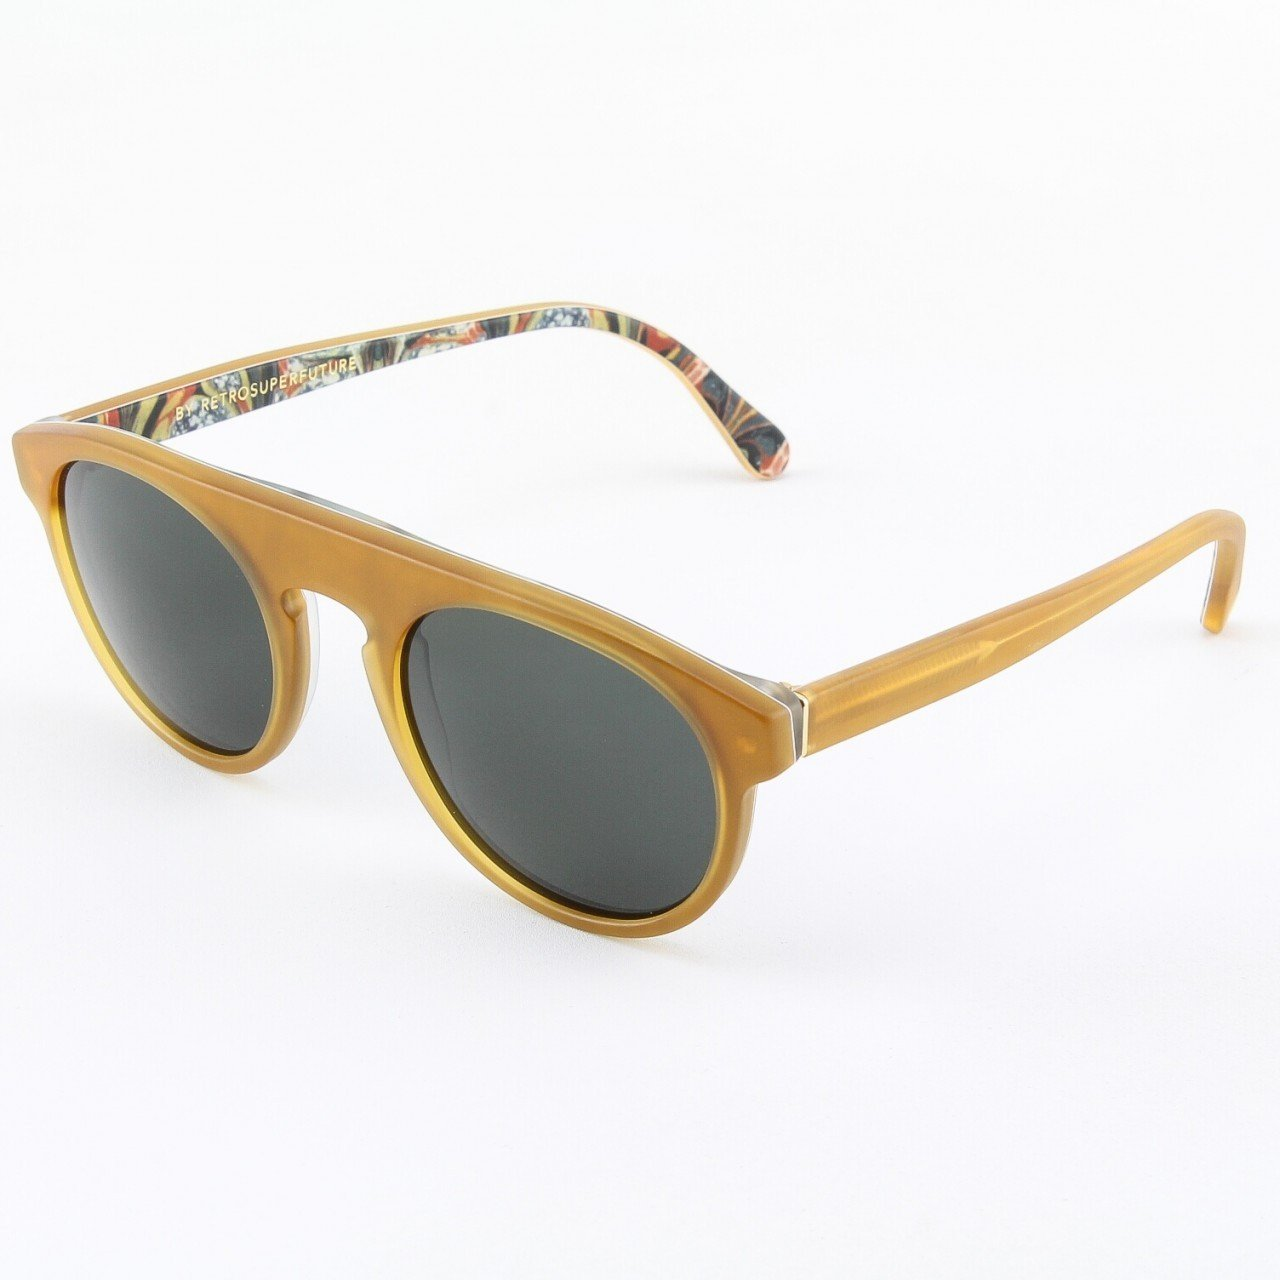 Super Racer 941/3T Sunglasses Ochre Color Pattern with Black Zeiss Lenses by RETROSUPERFUTURE